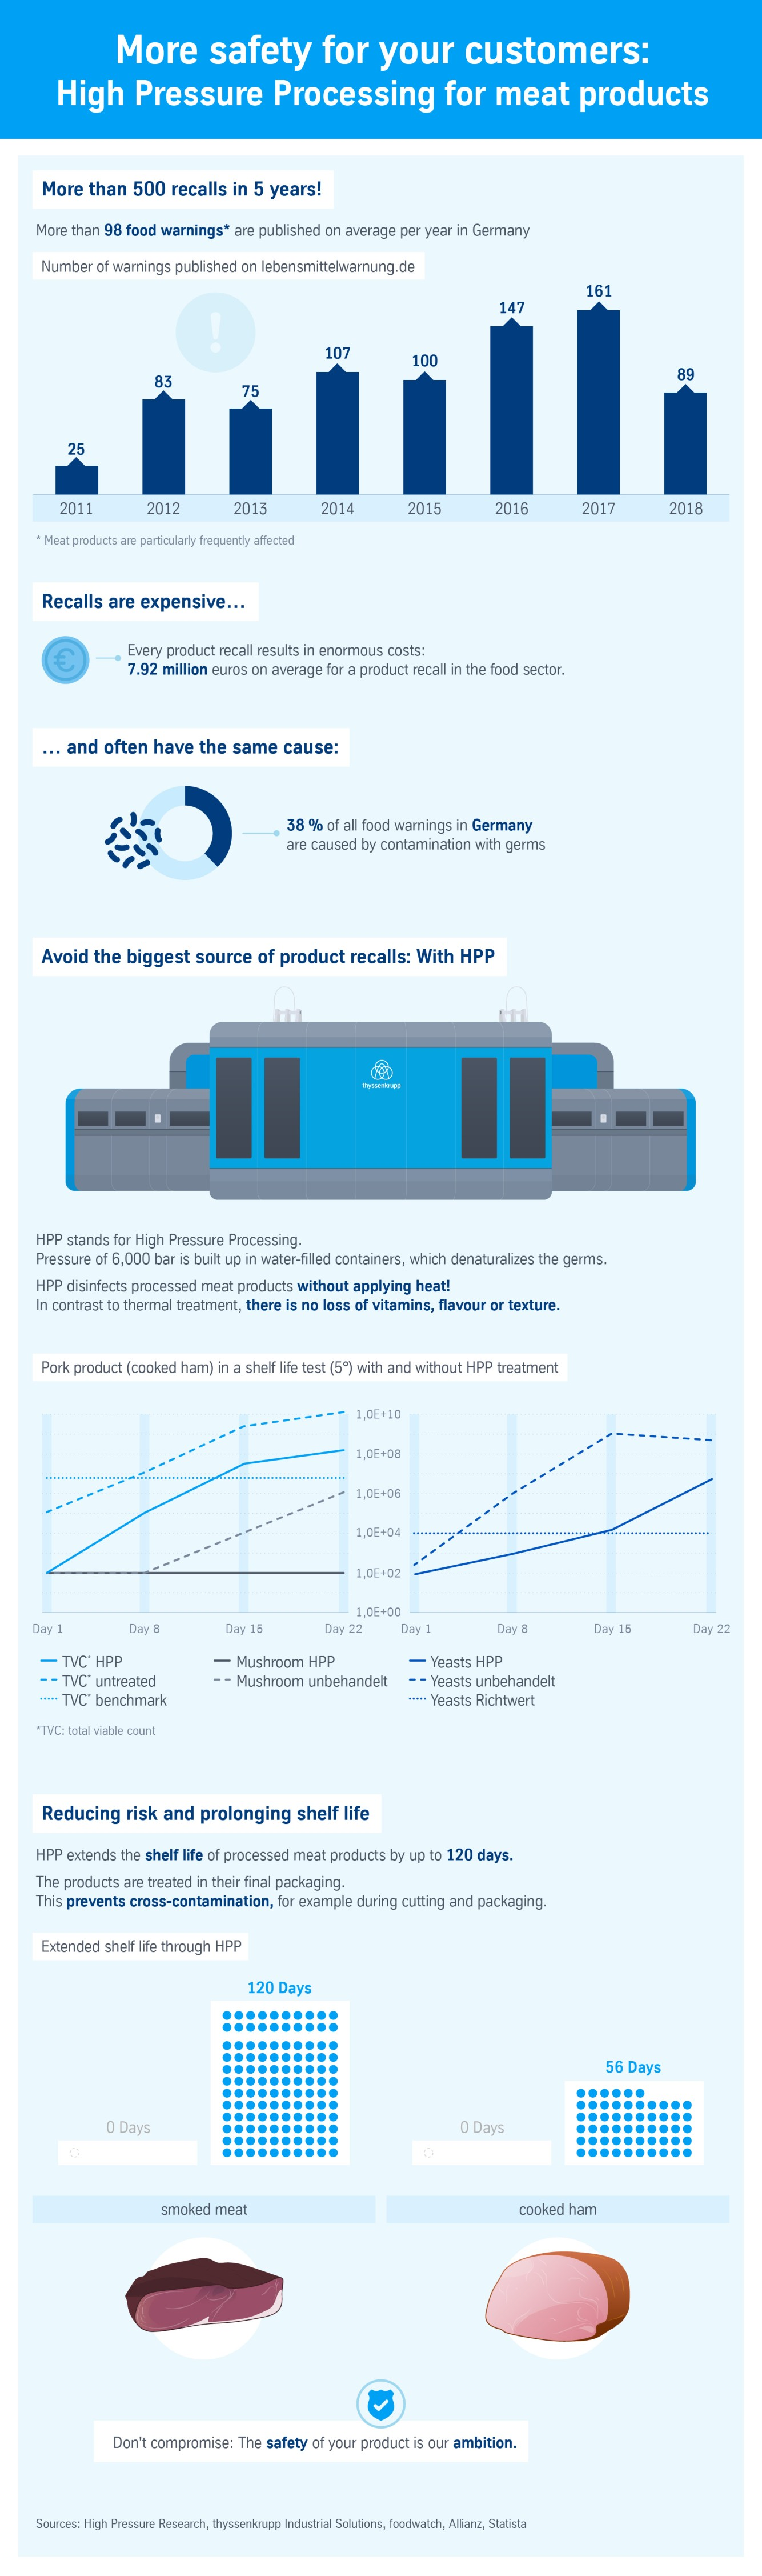 High Pressure Processing (HPP) for meat products